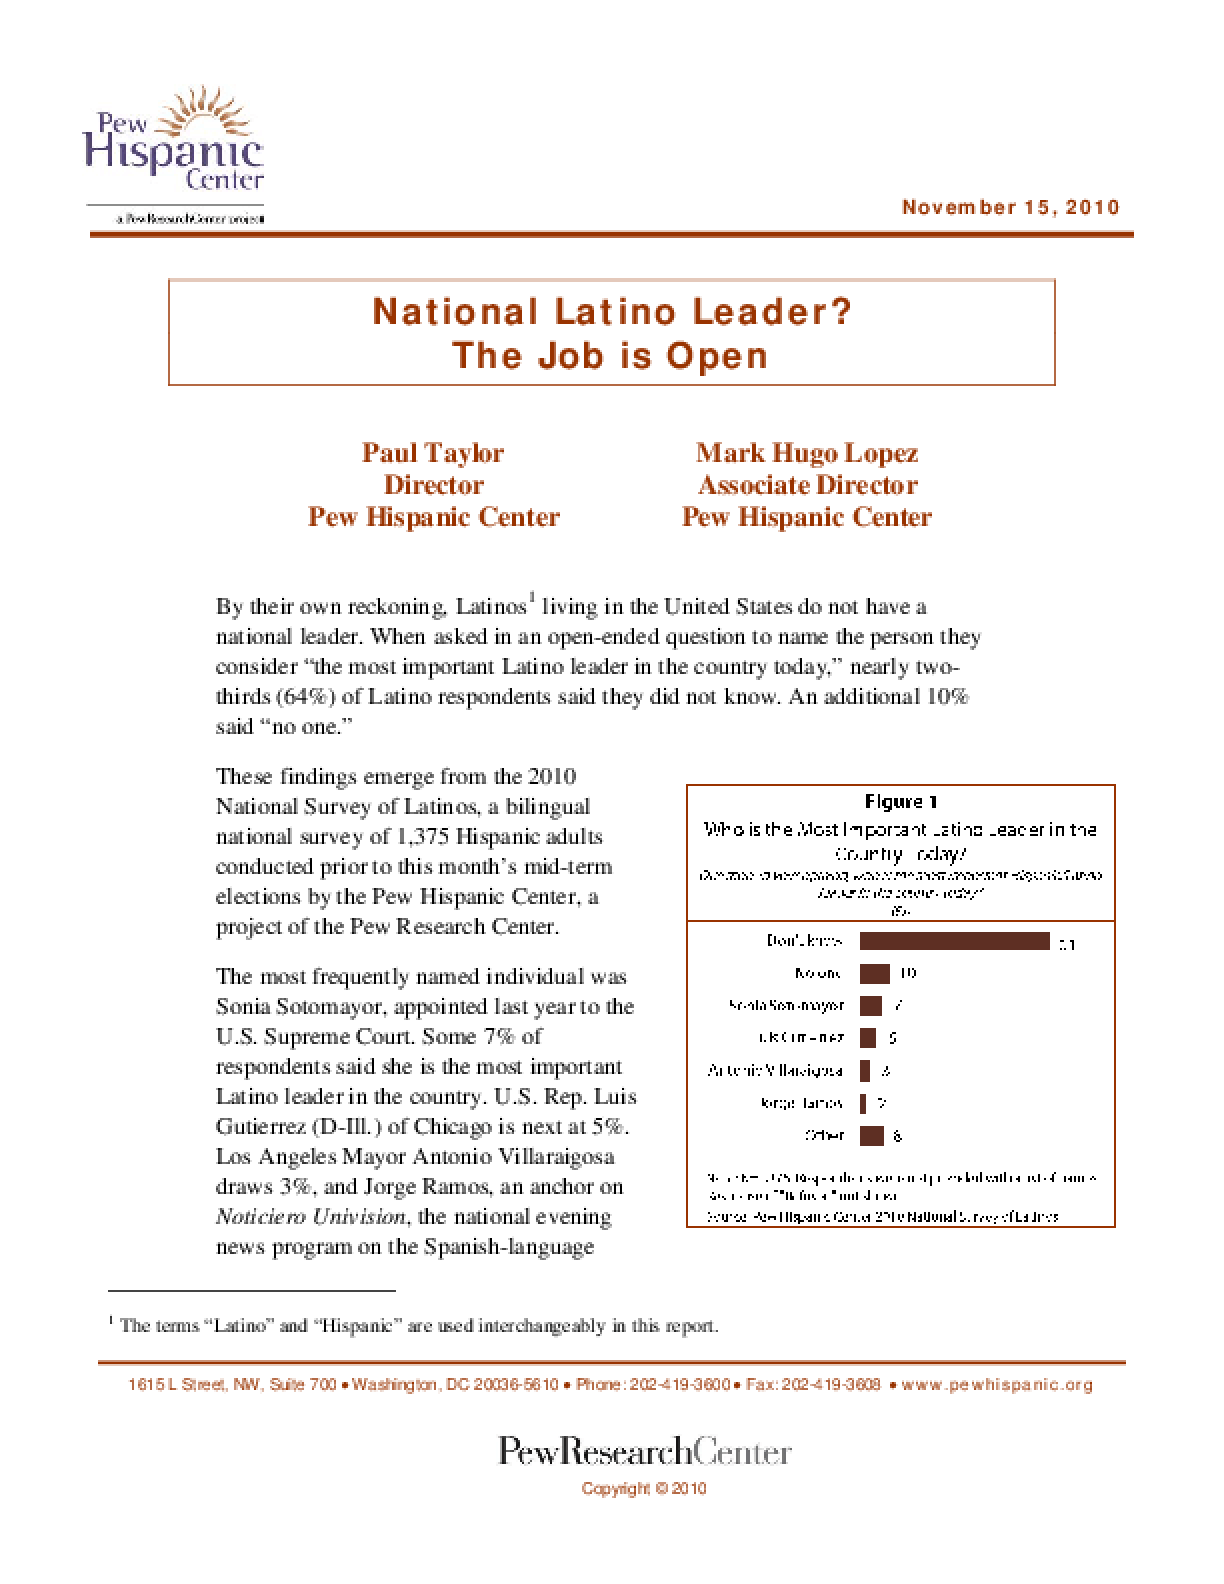 National Latino Leader? The Job is Open